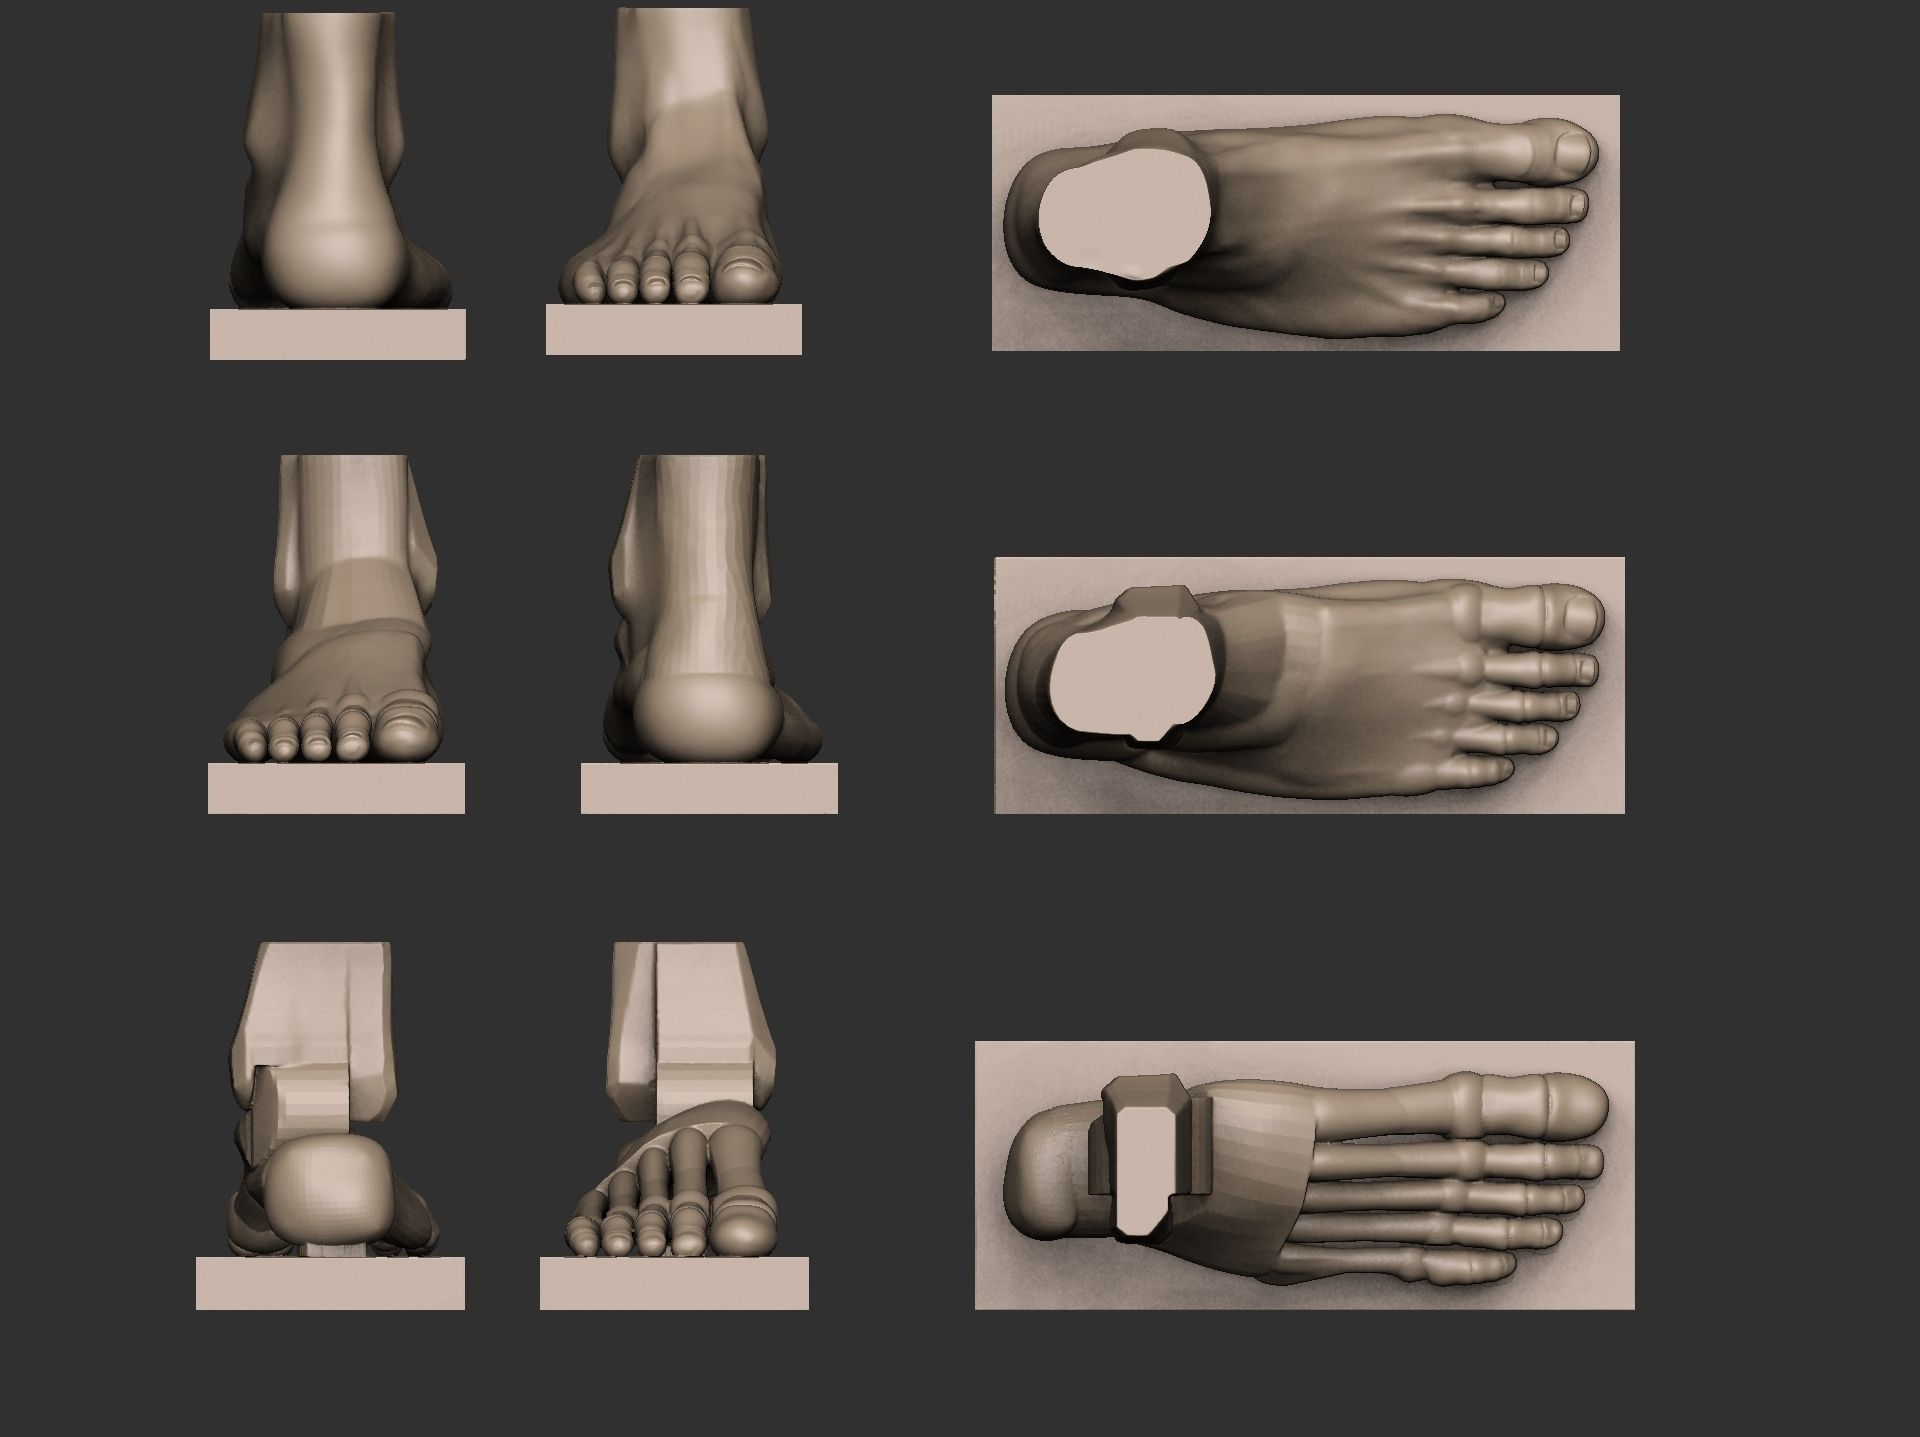 Foot Reference 3d Model 3d Printable Stl Cgtrader Com